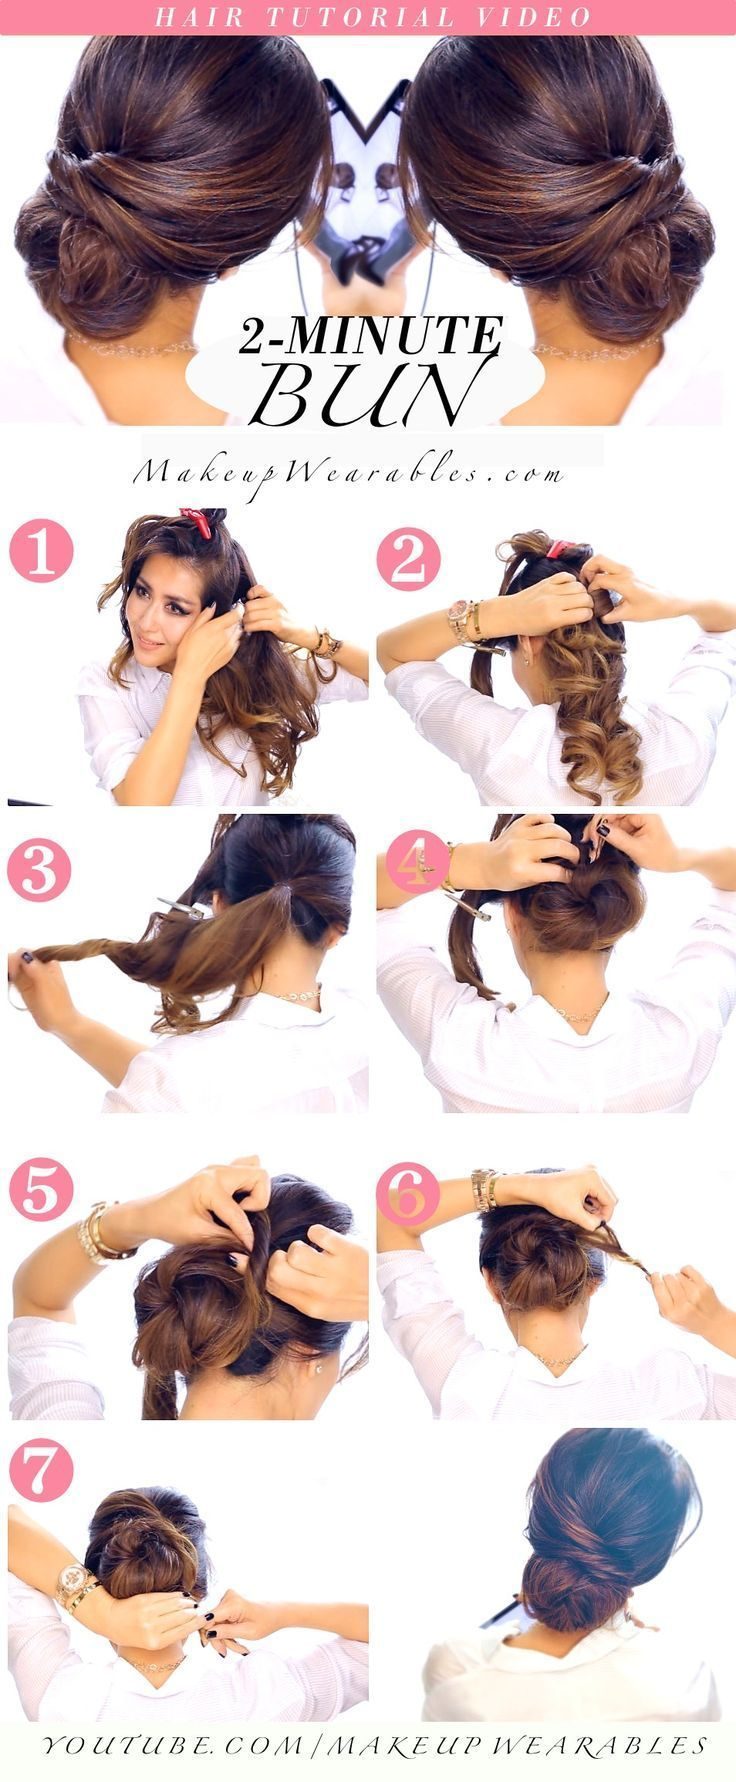 Easy diy hairstyle tutorials makeupwearables hairstyles